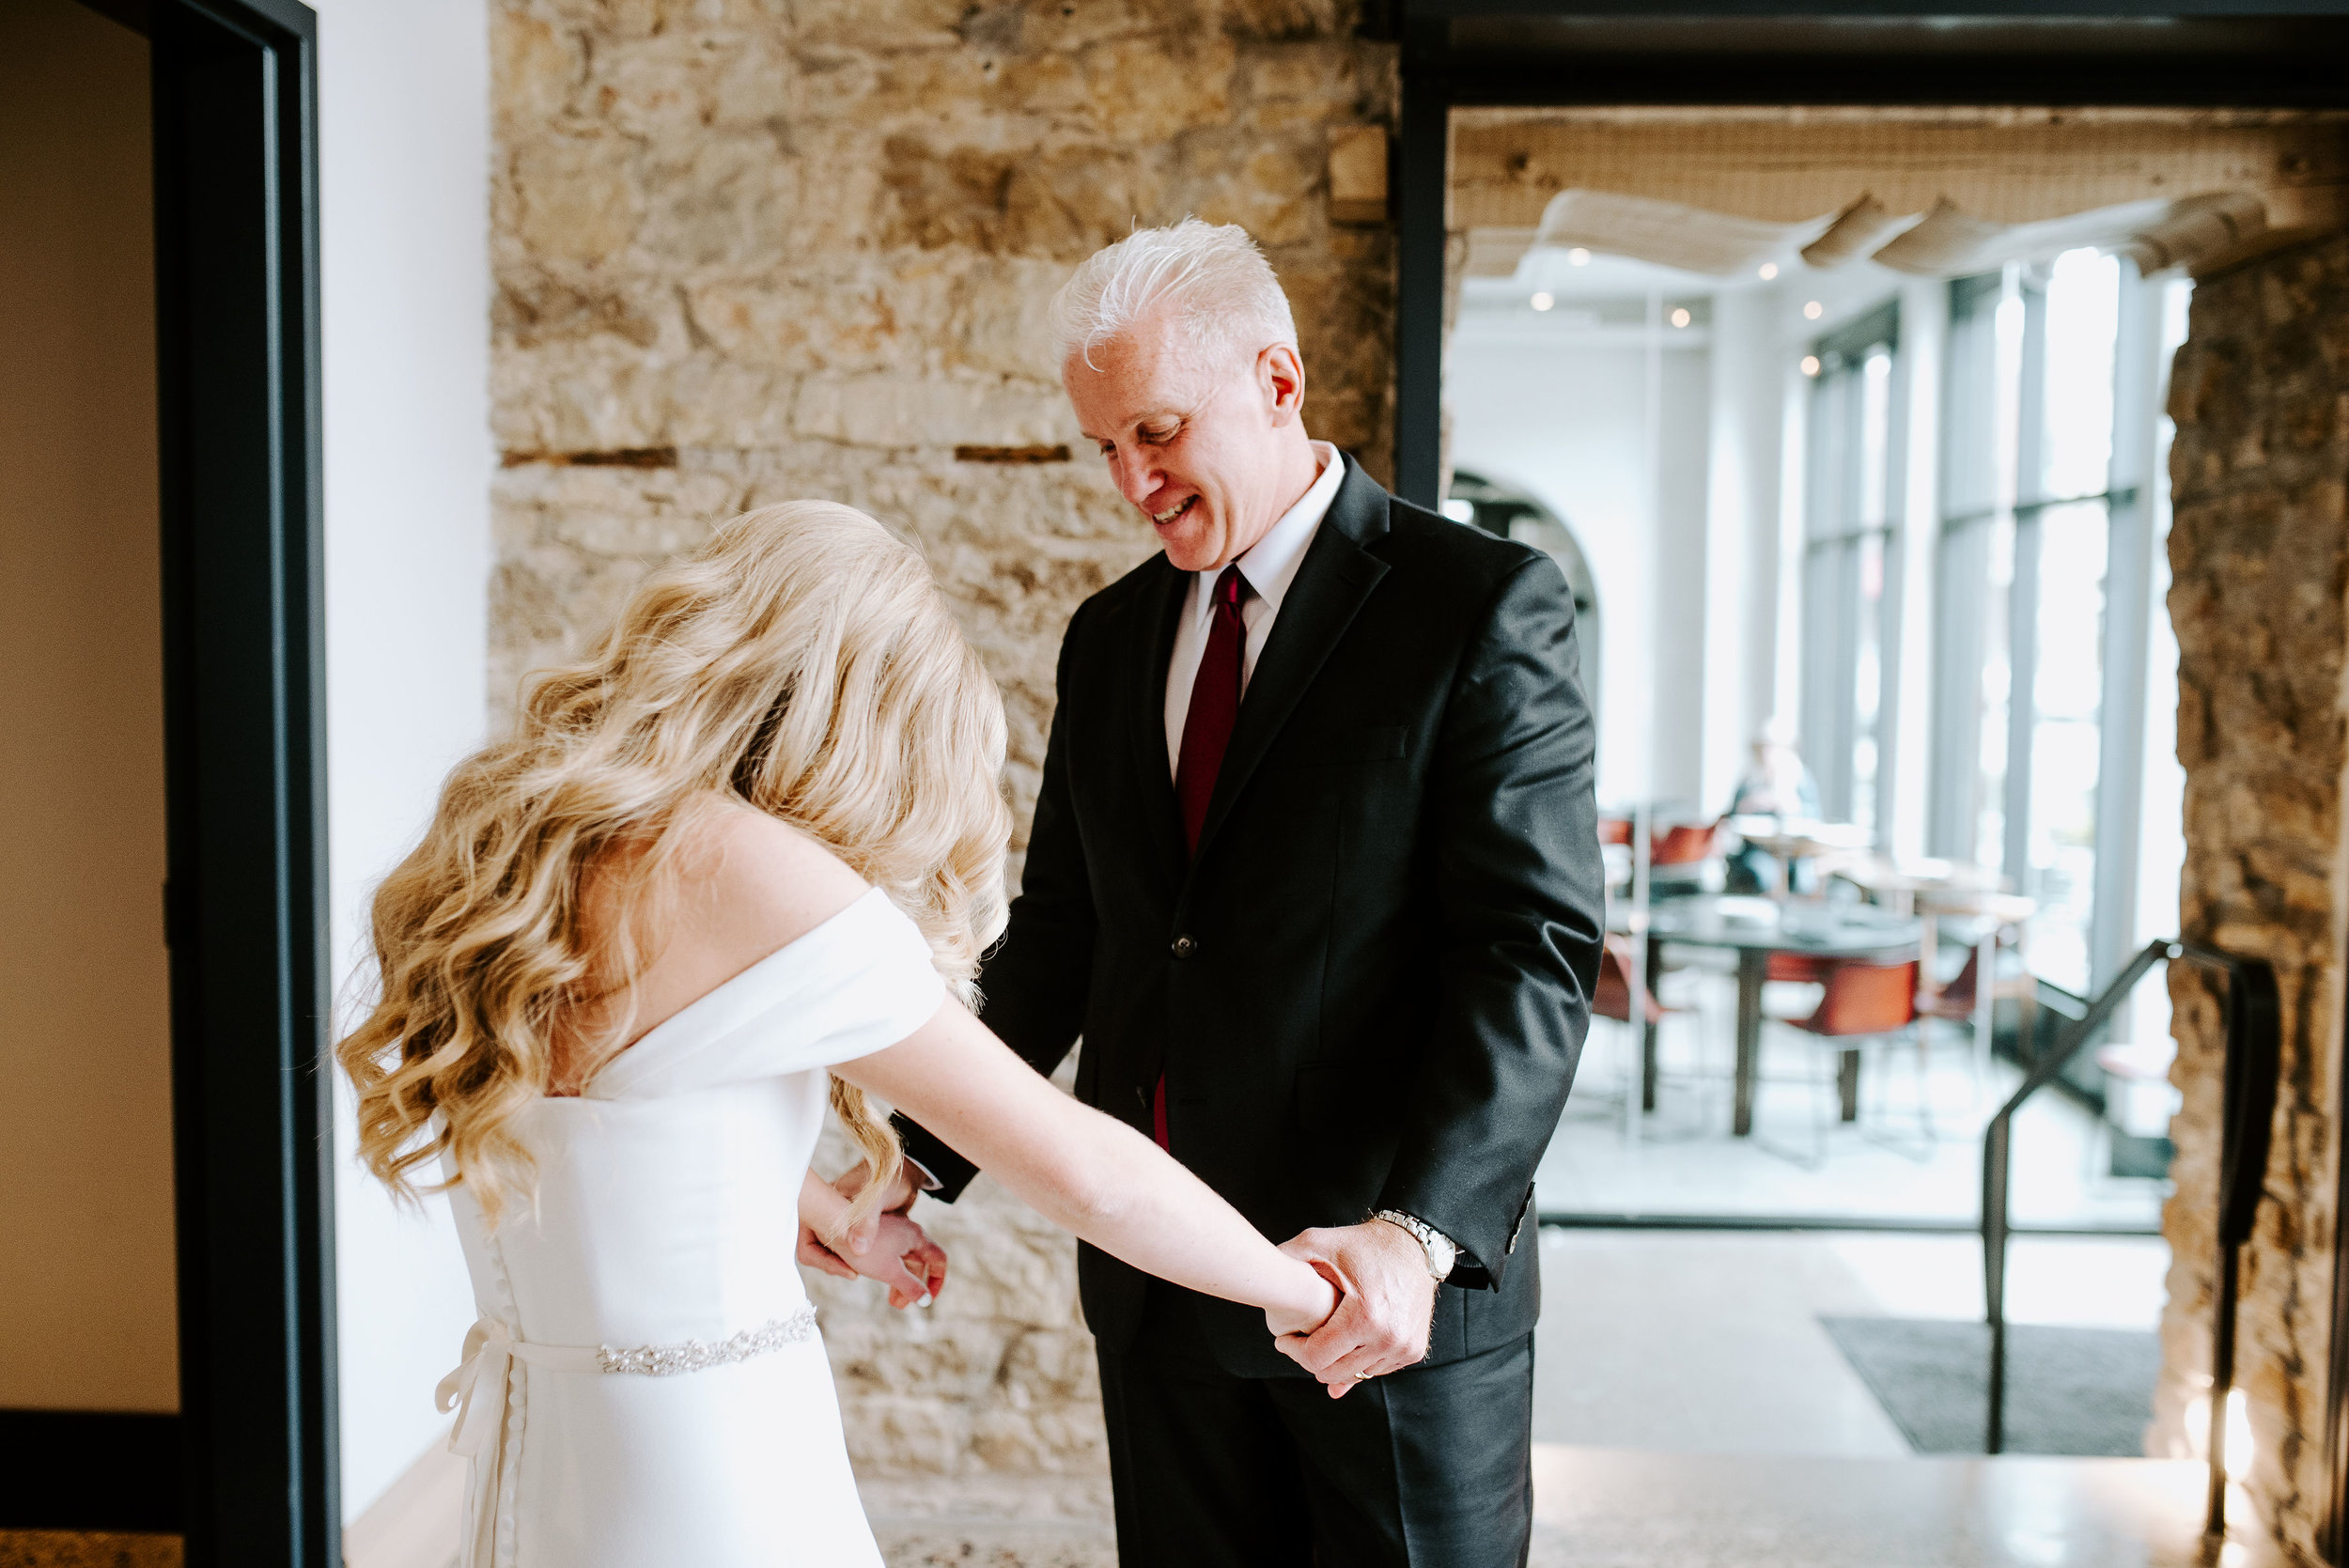 Winehaven-Winery-Wedding-First-Look-Minneapolis-MN.jpg